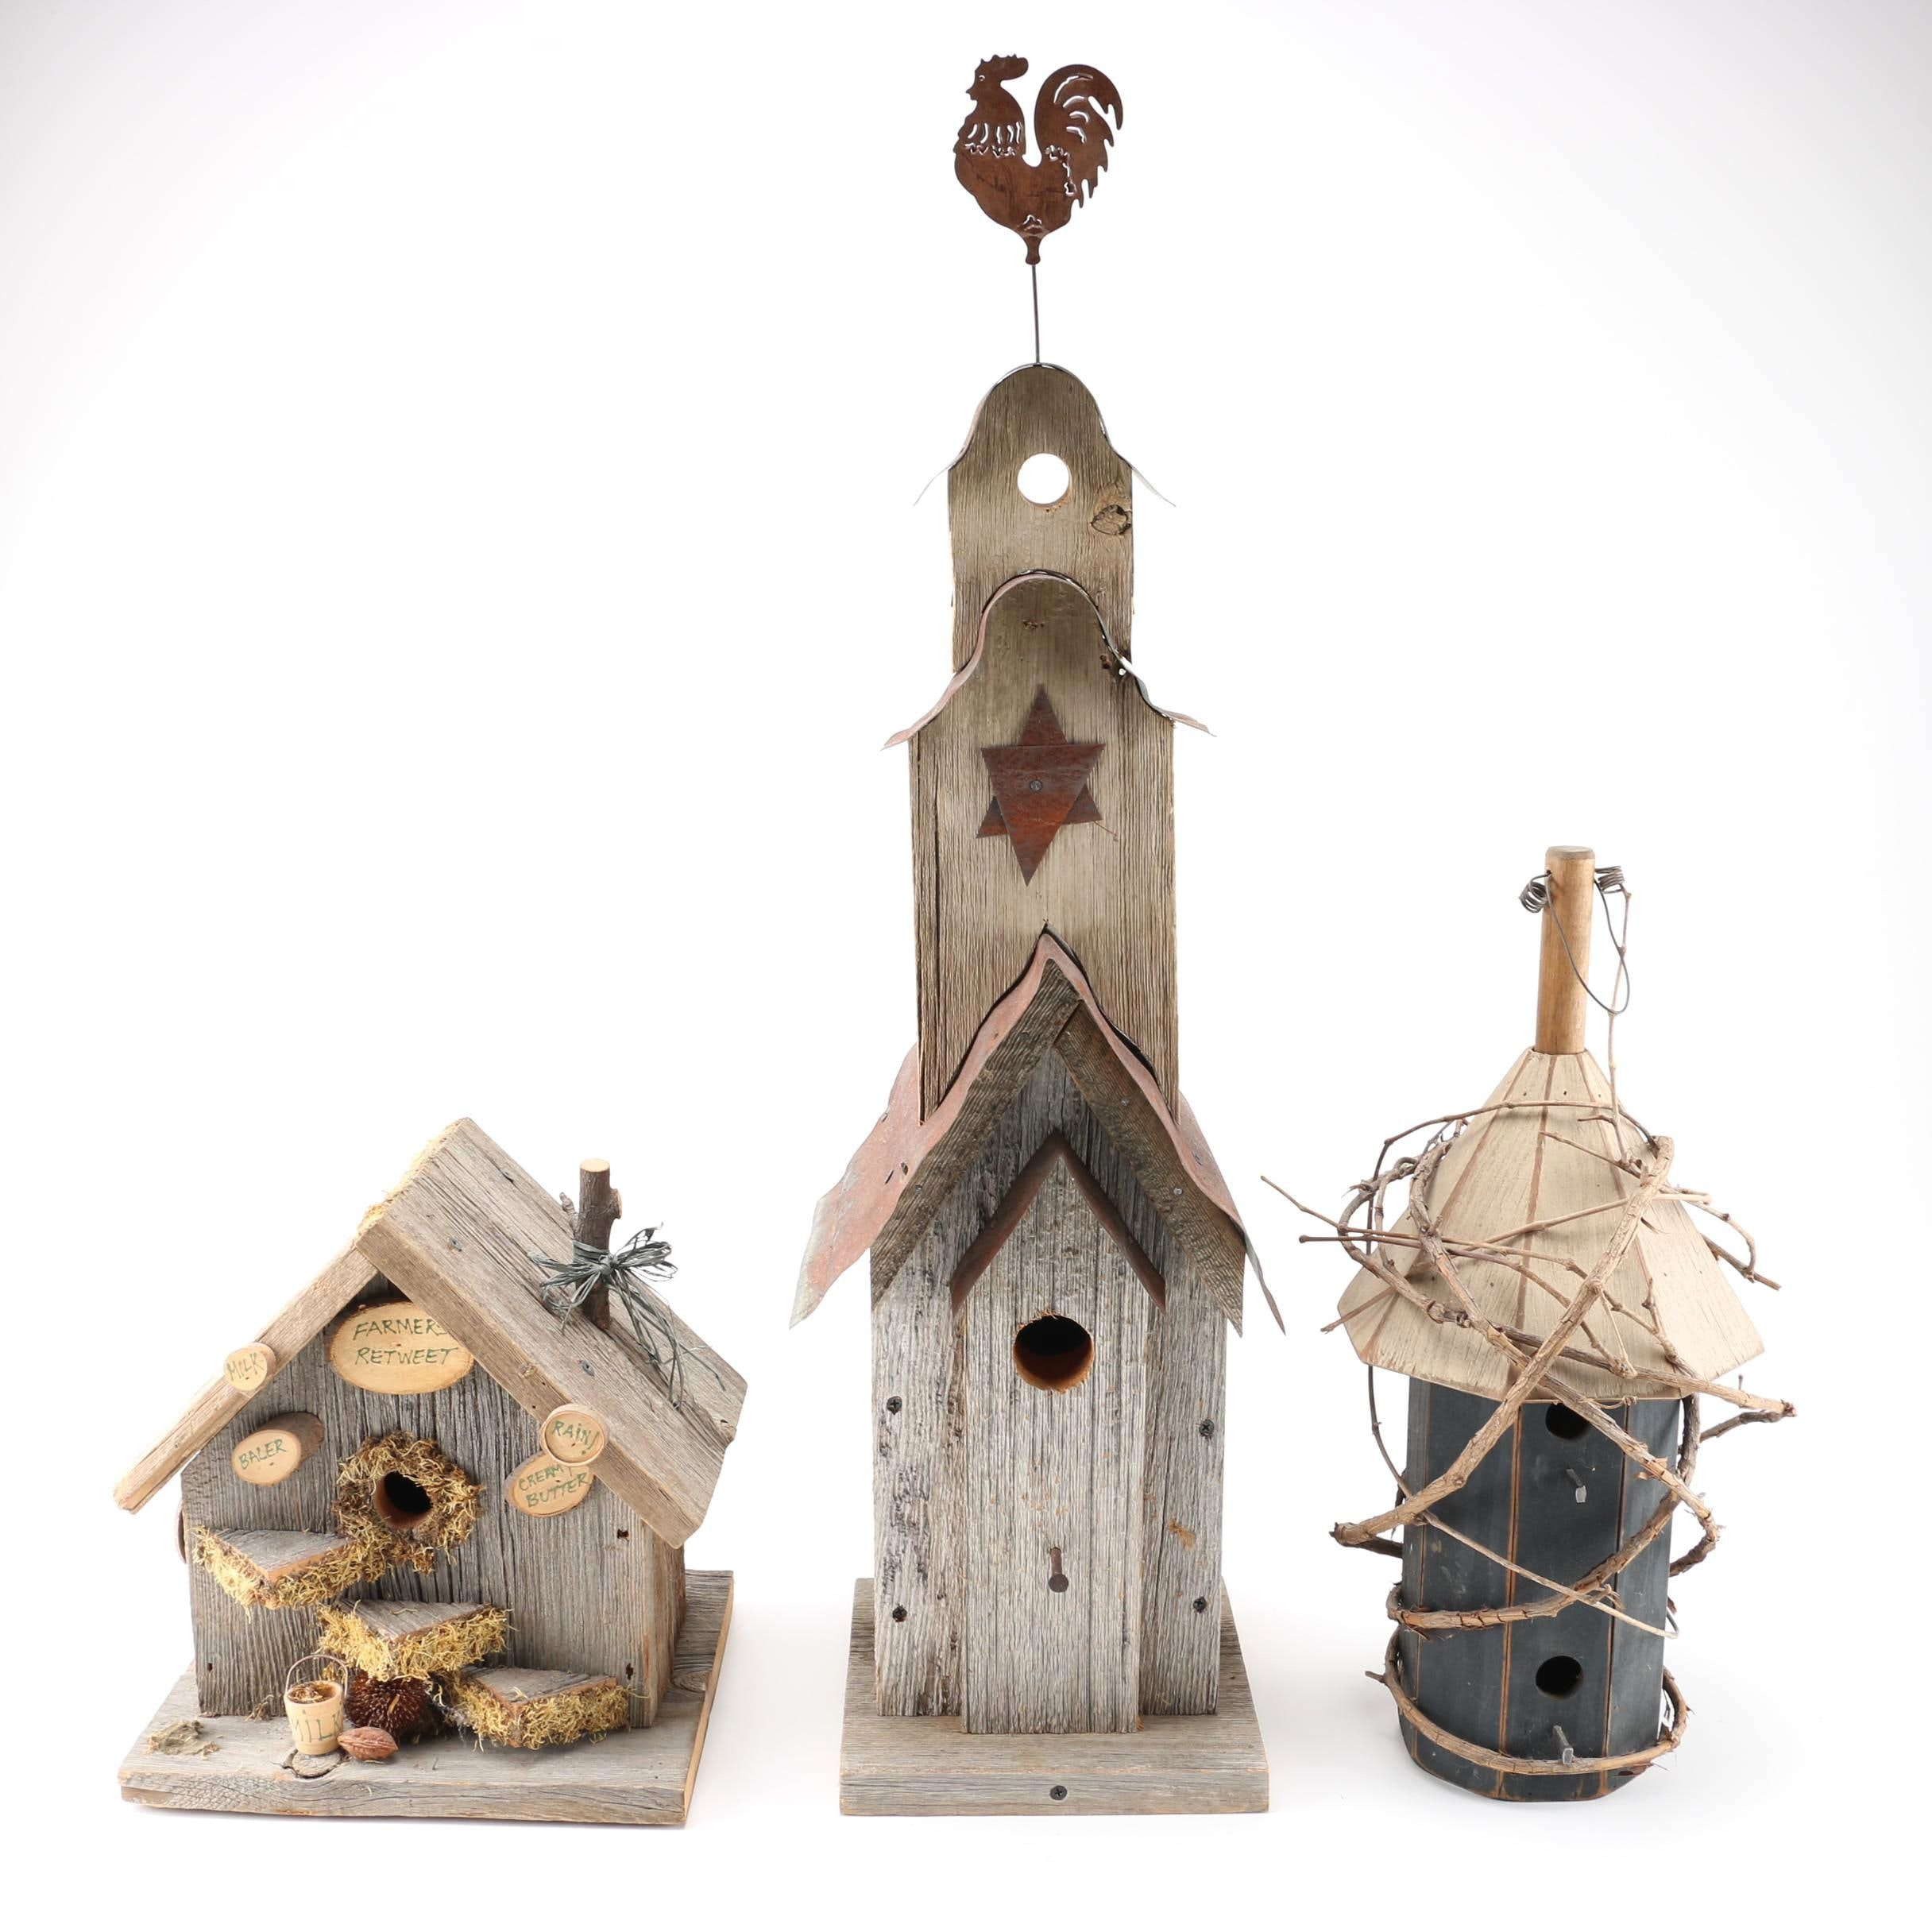 Assortment of Wooden Birdhouses